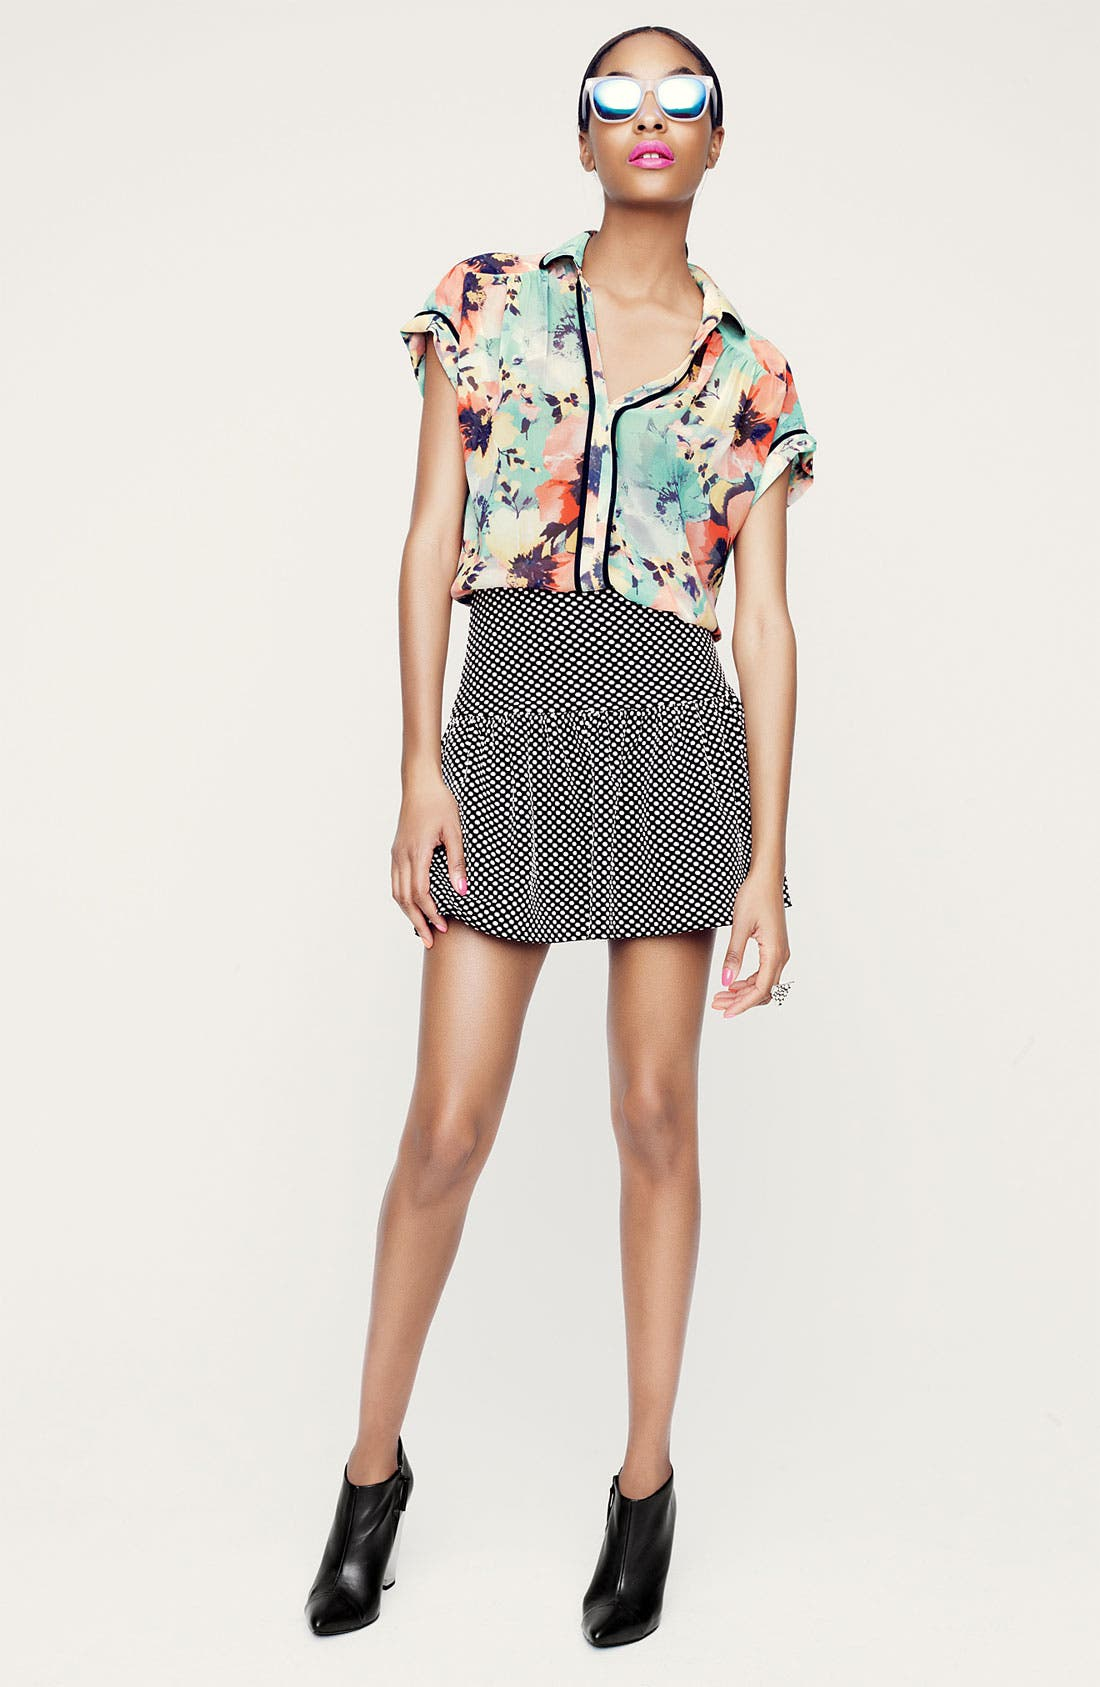 Main Image - Ace Delivery Top & Collective Concepts Skirt